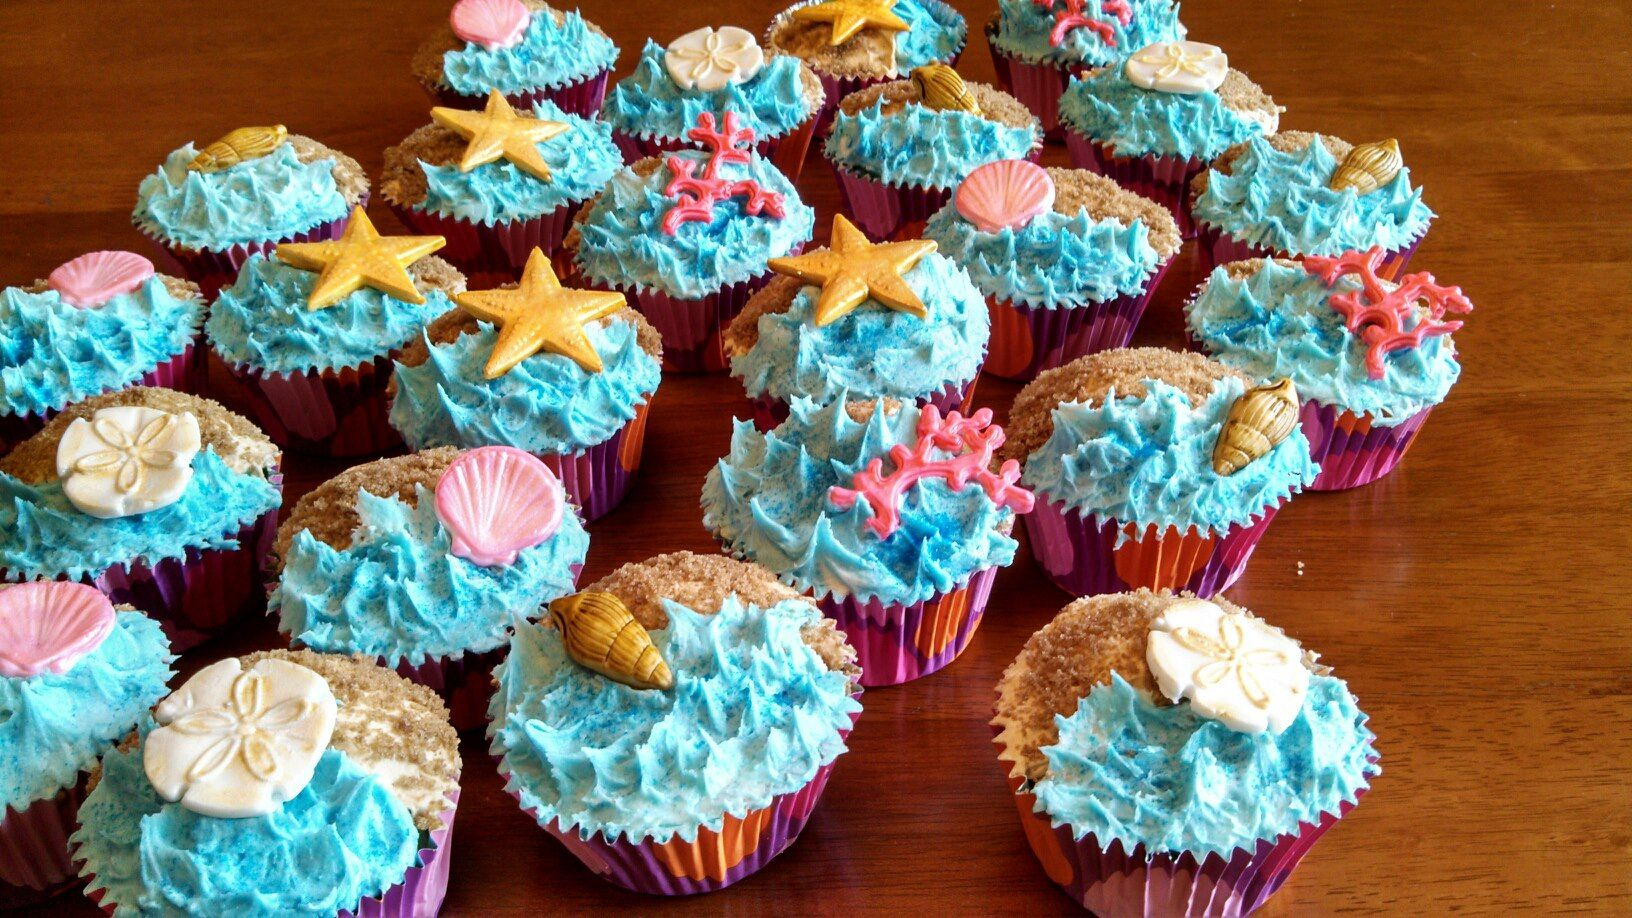 Beach and ocean cupcakes with shells sand dollars coral